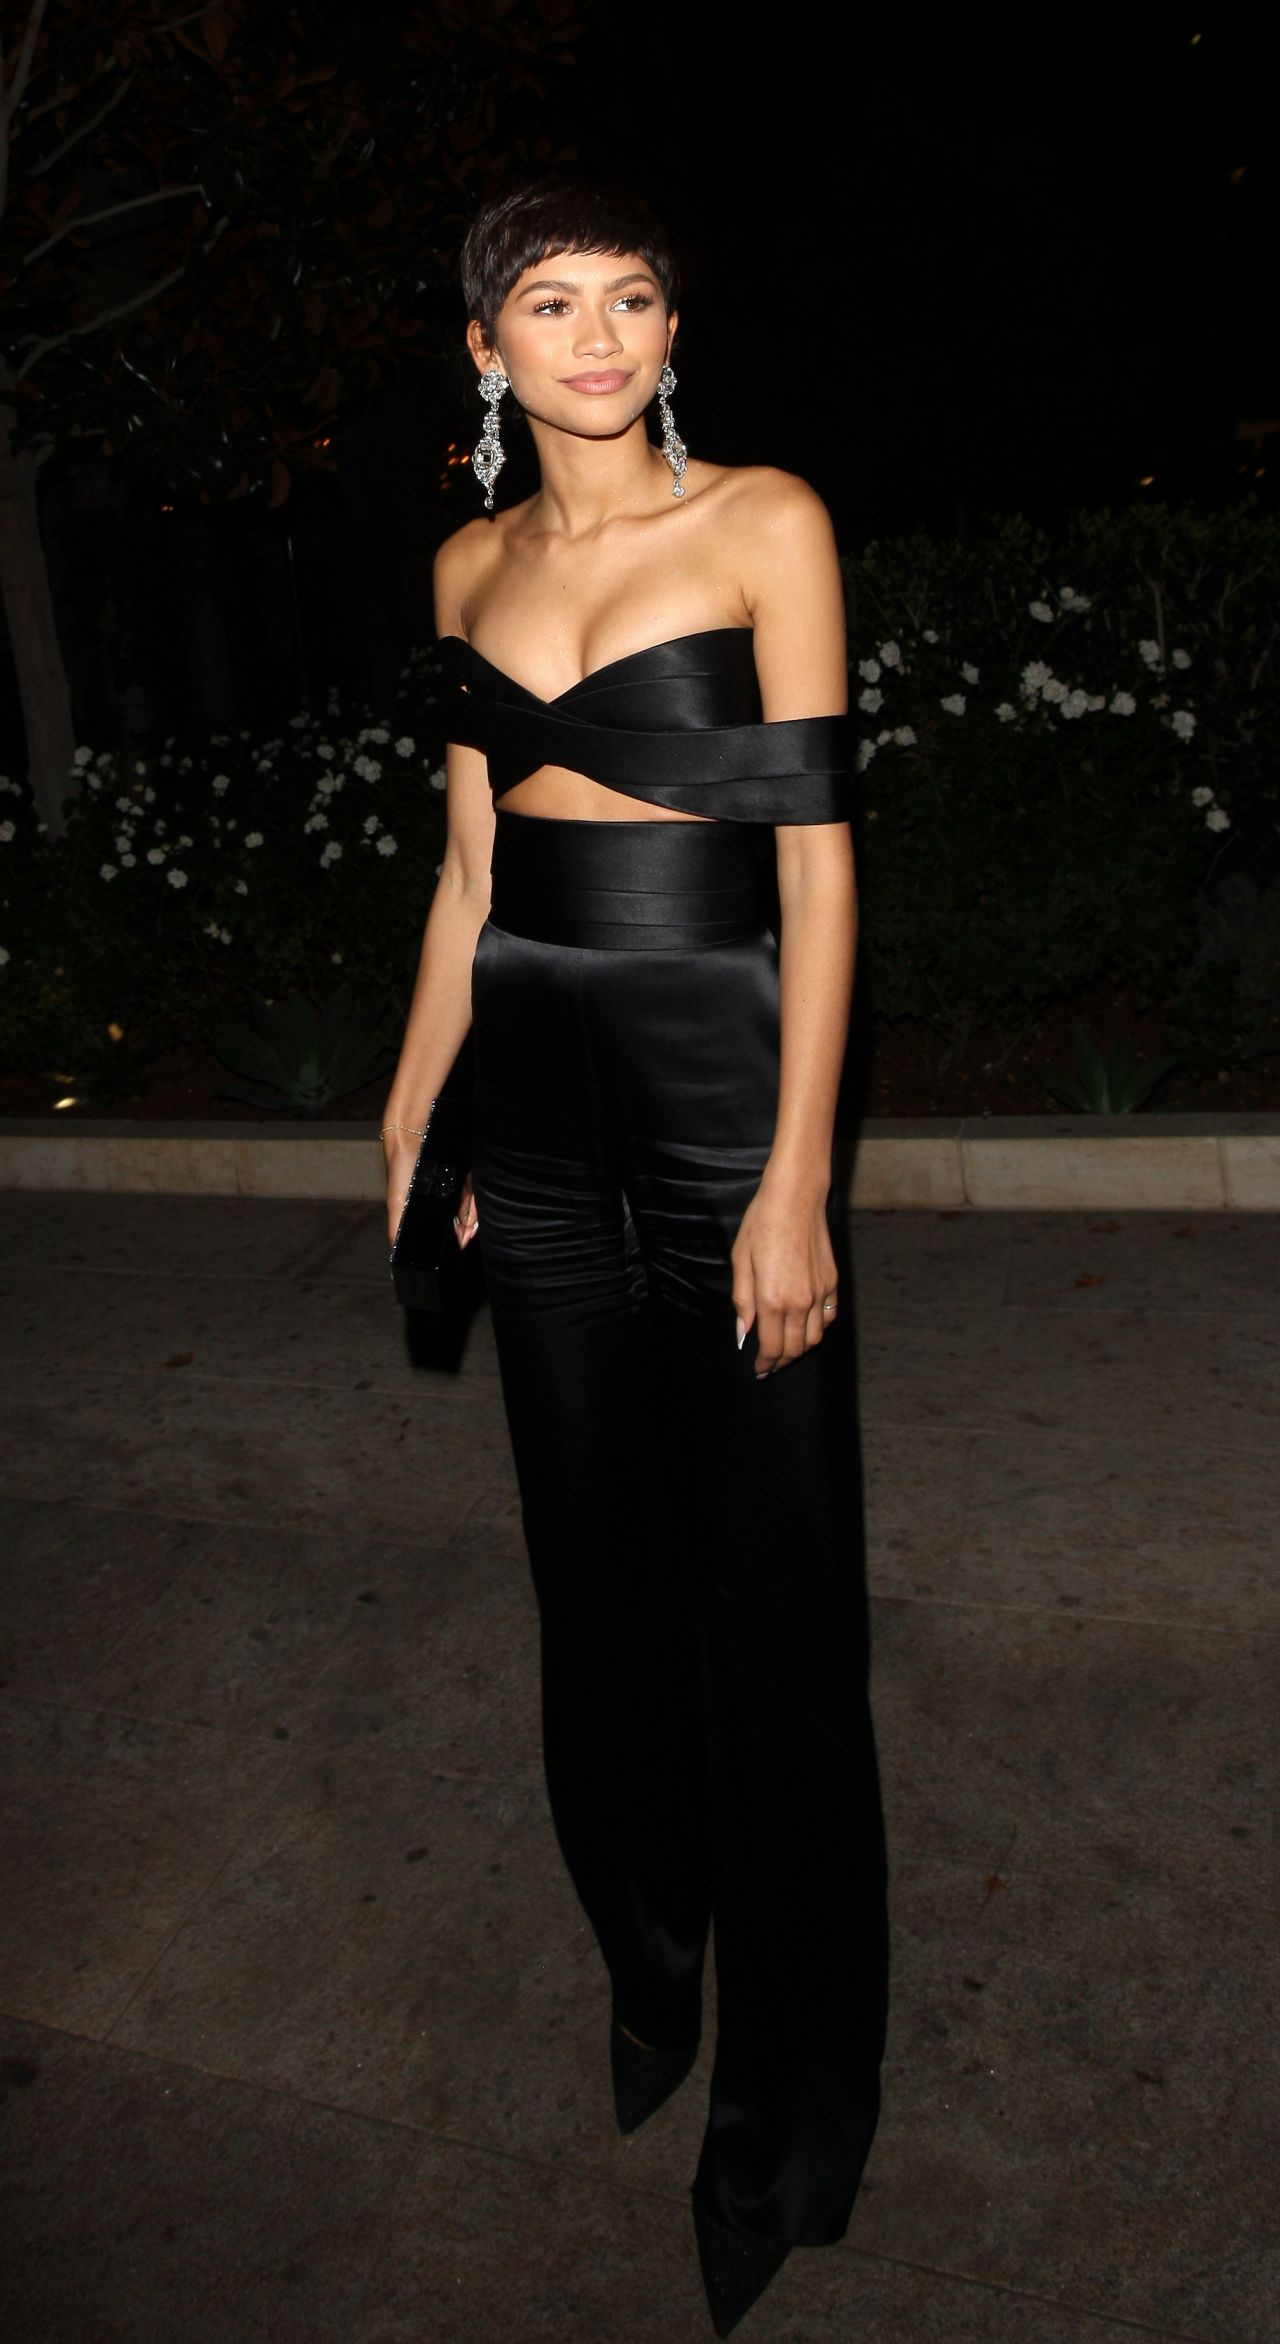 zendaya-at-the-chateau-marmont-in-west-hollywood-october-2015_12